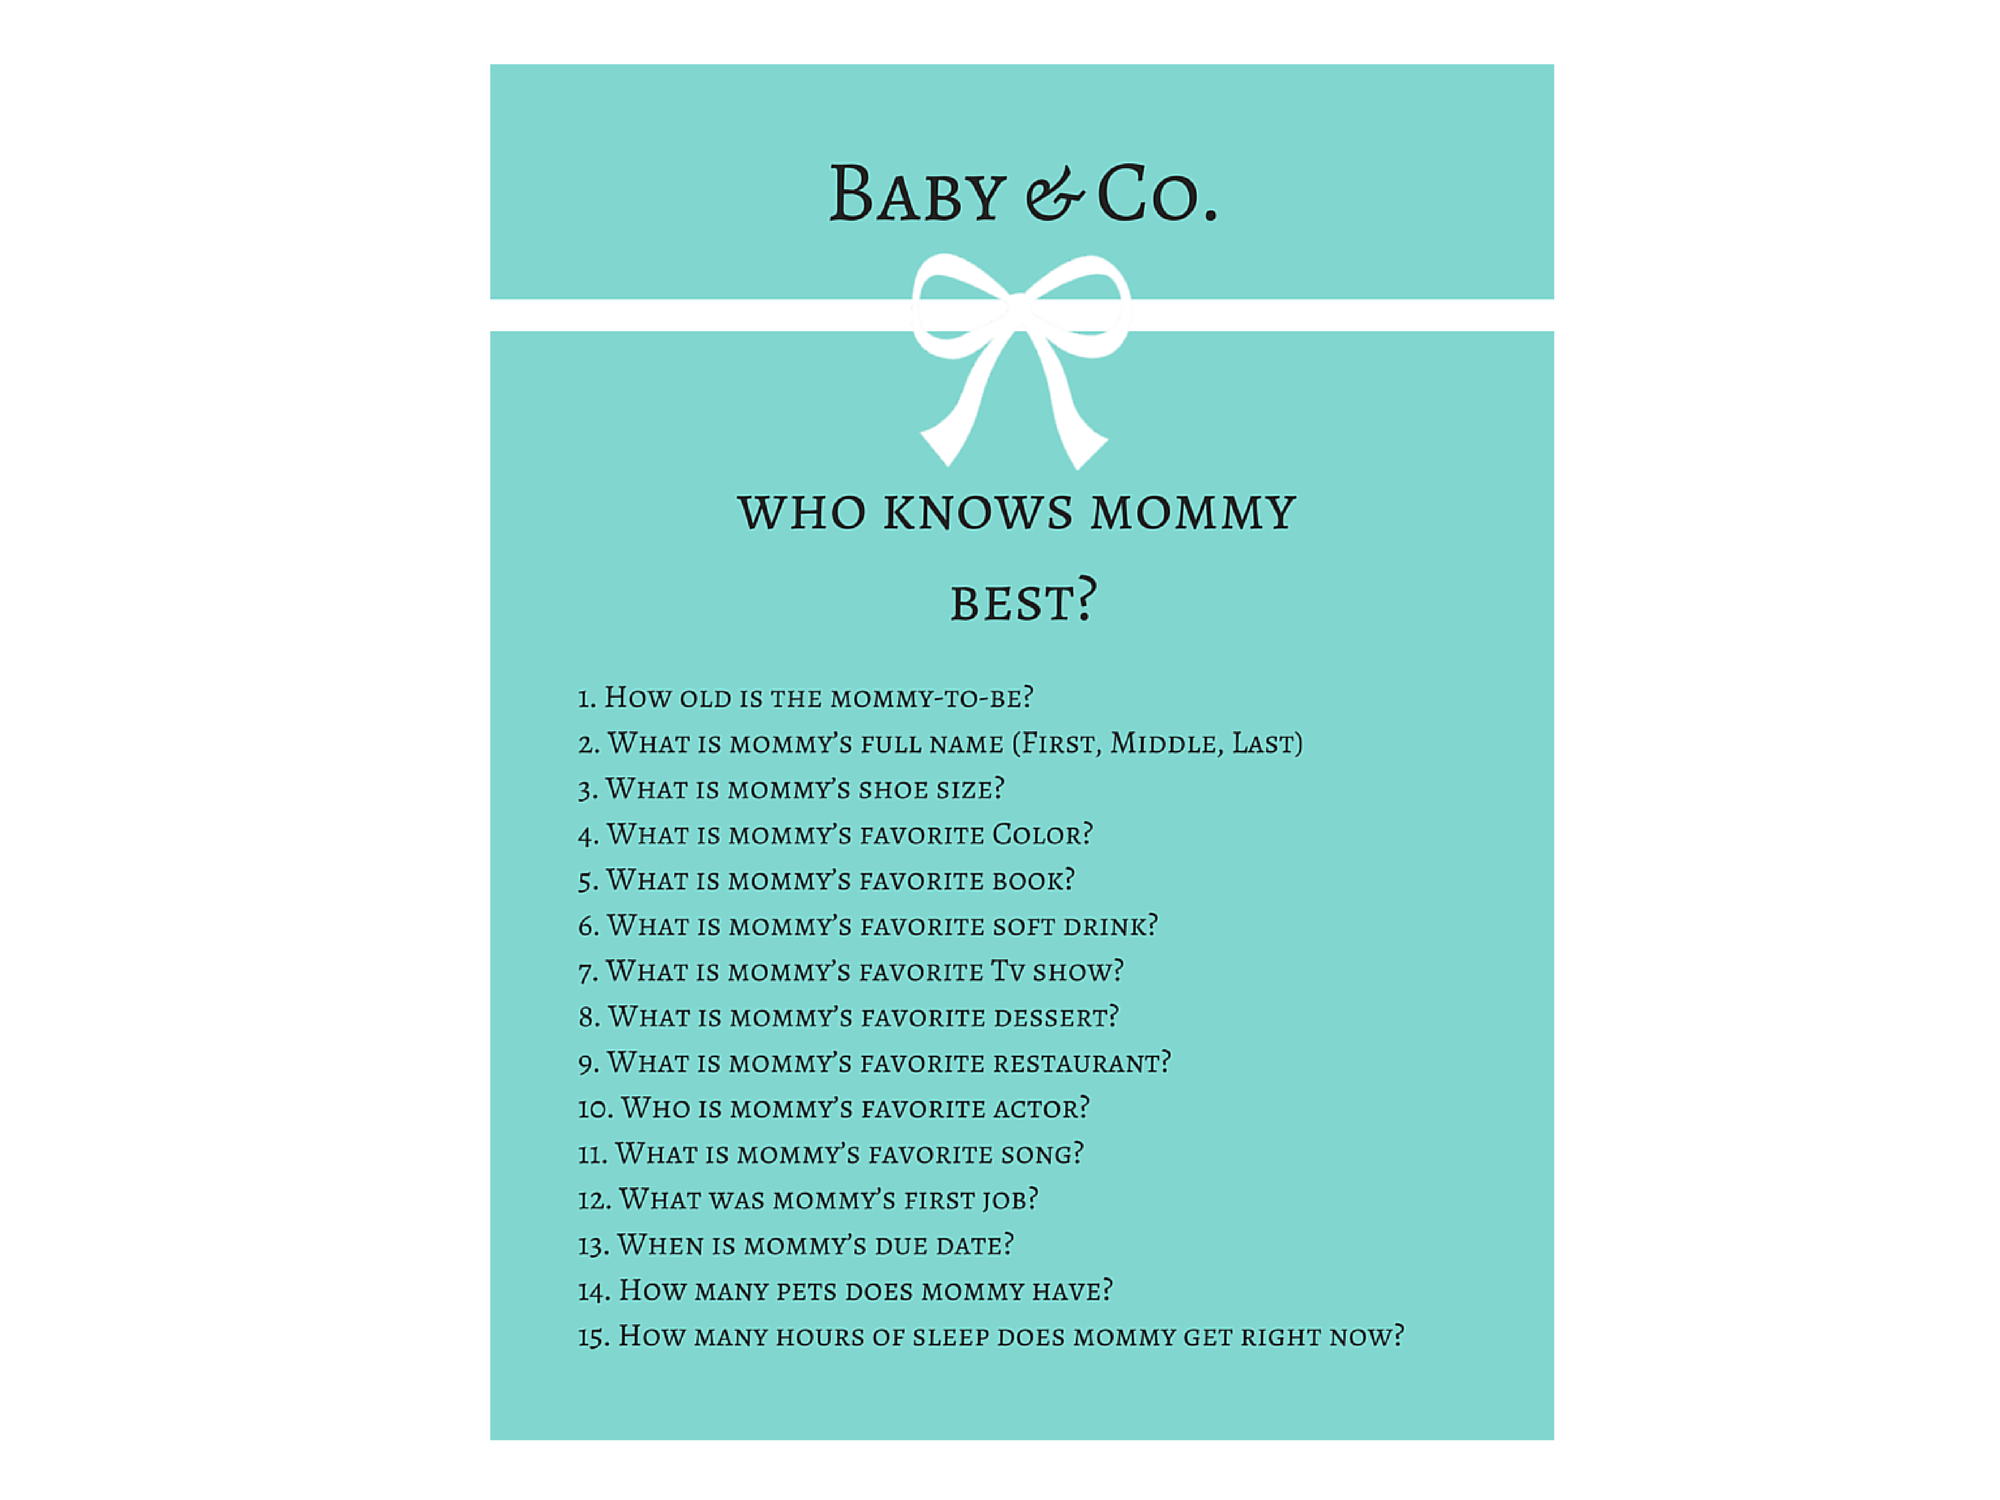 image regarding Who Knows Mommy Best Printable referred to as tiffany Kid Shower who appreciates mommy least difficult - Magical Printable